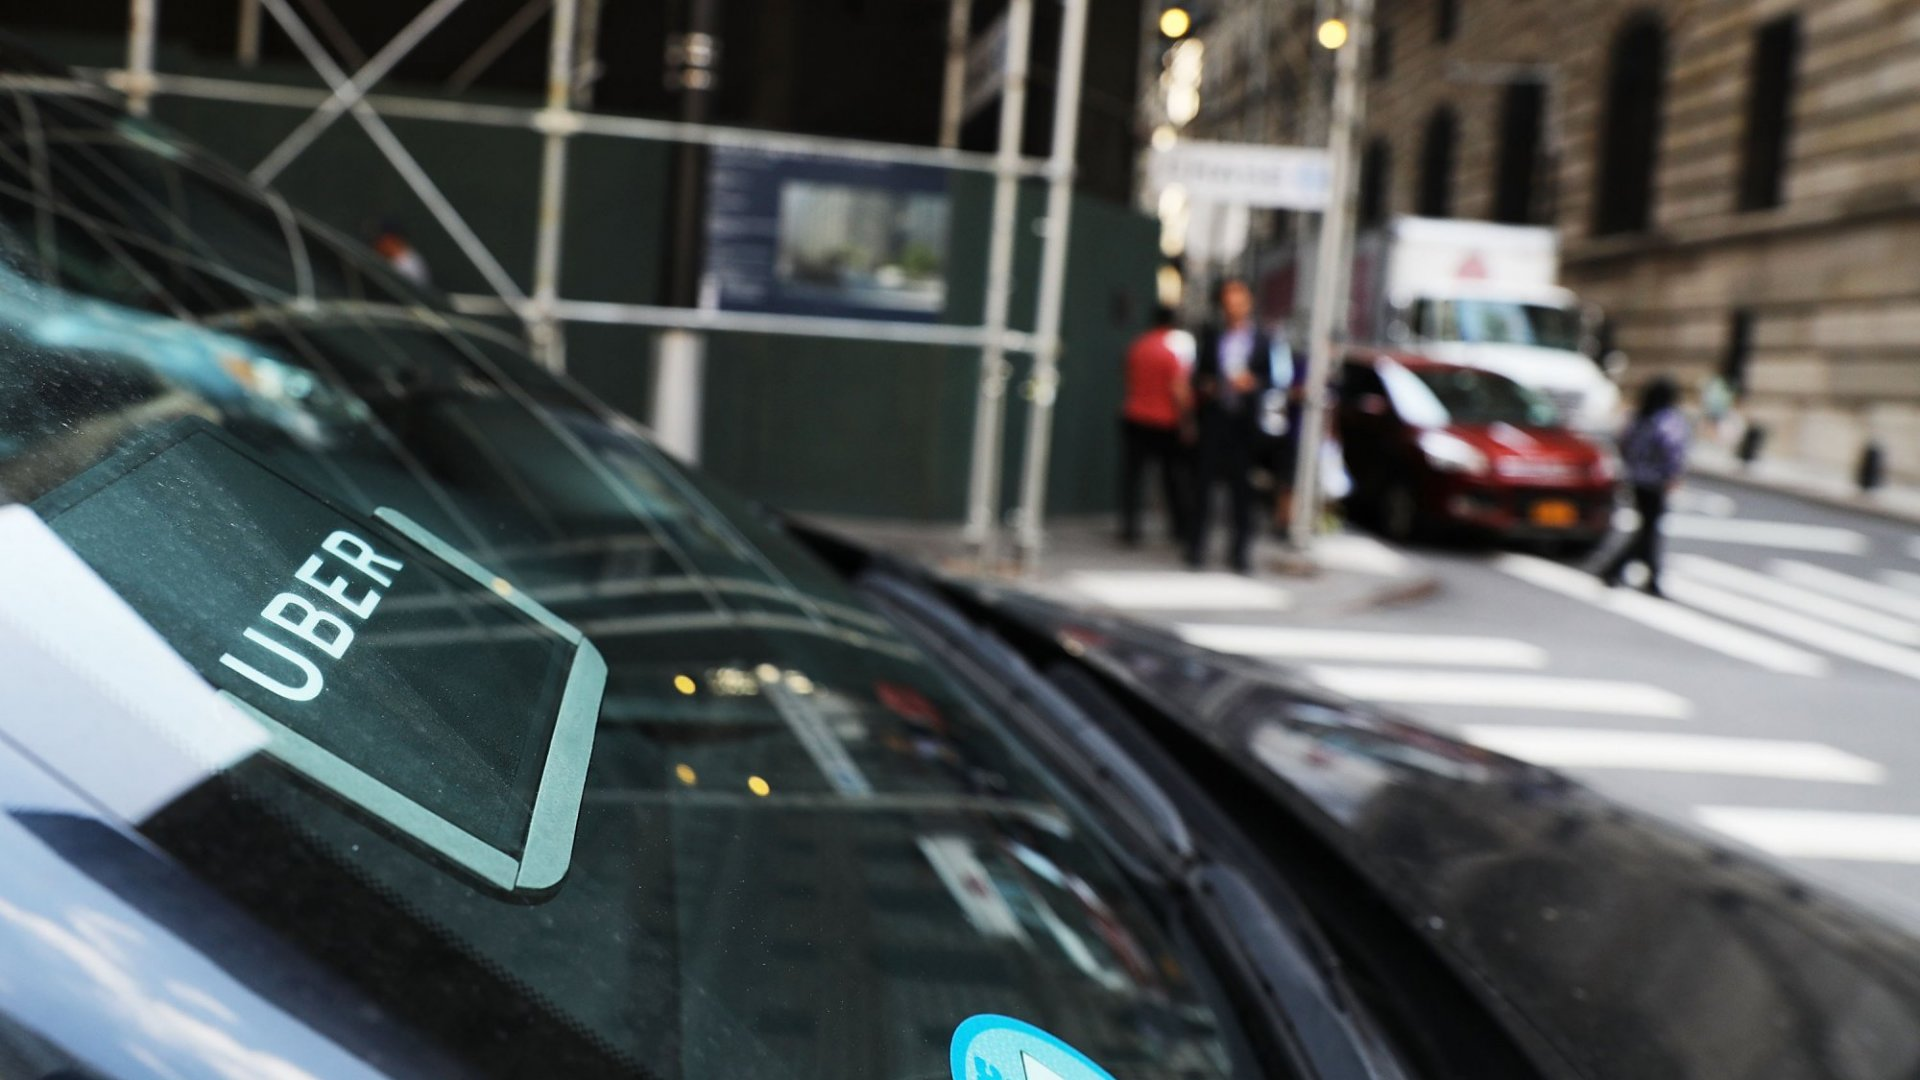 Uber Lays Off 400 Marketing Employees as the Company Struggles to Reach Profitability